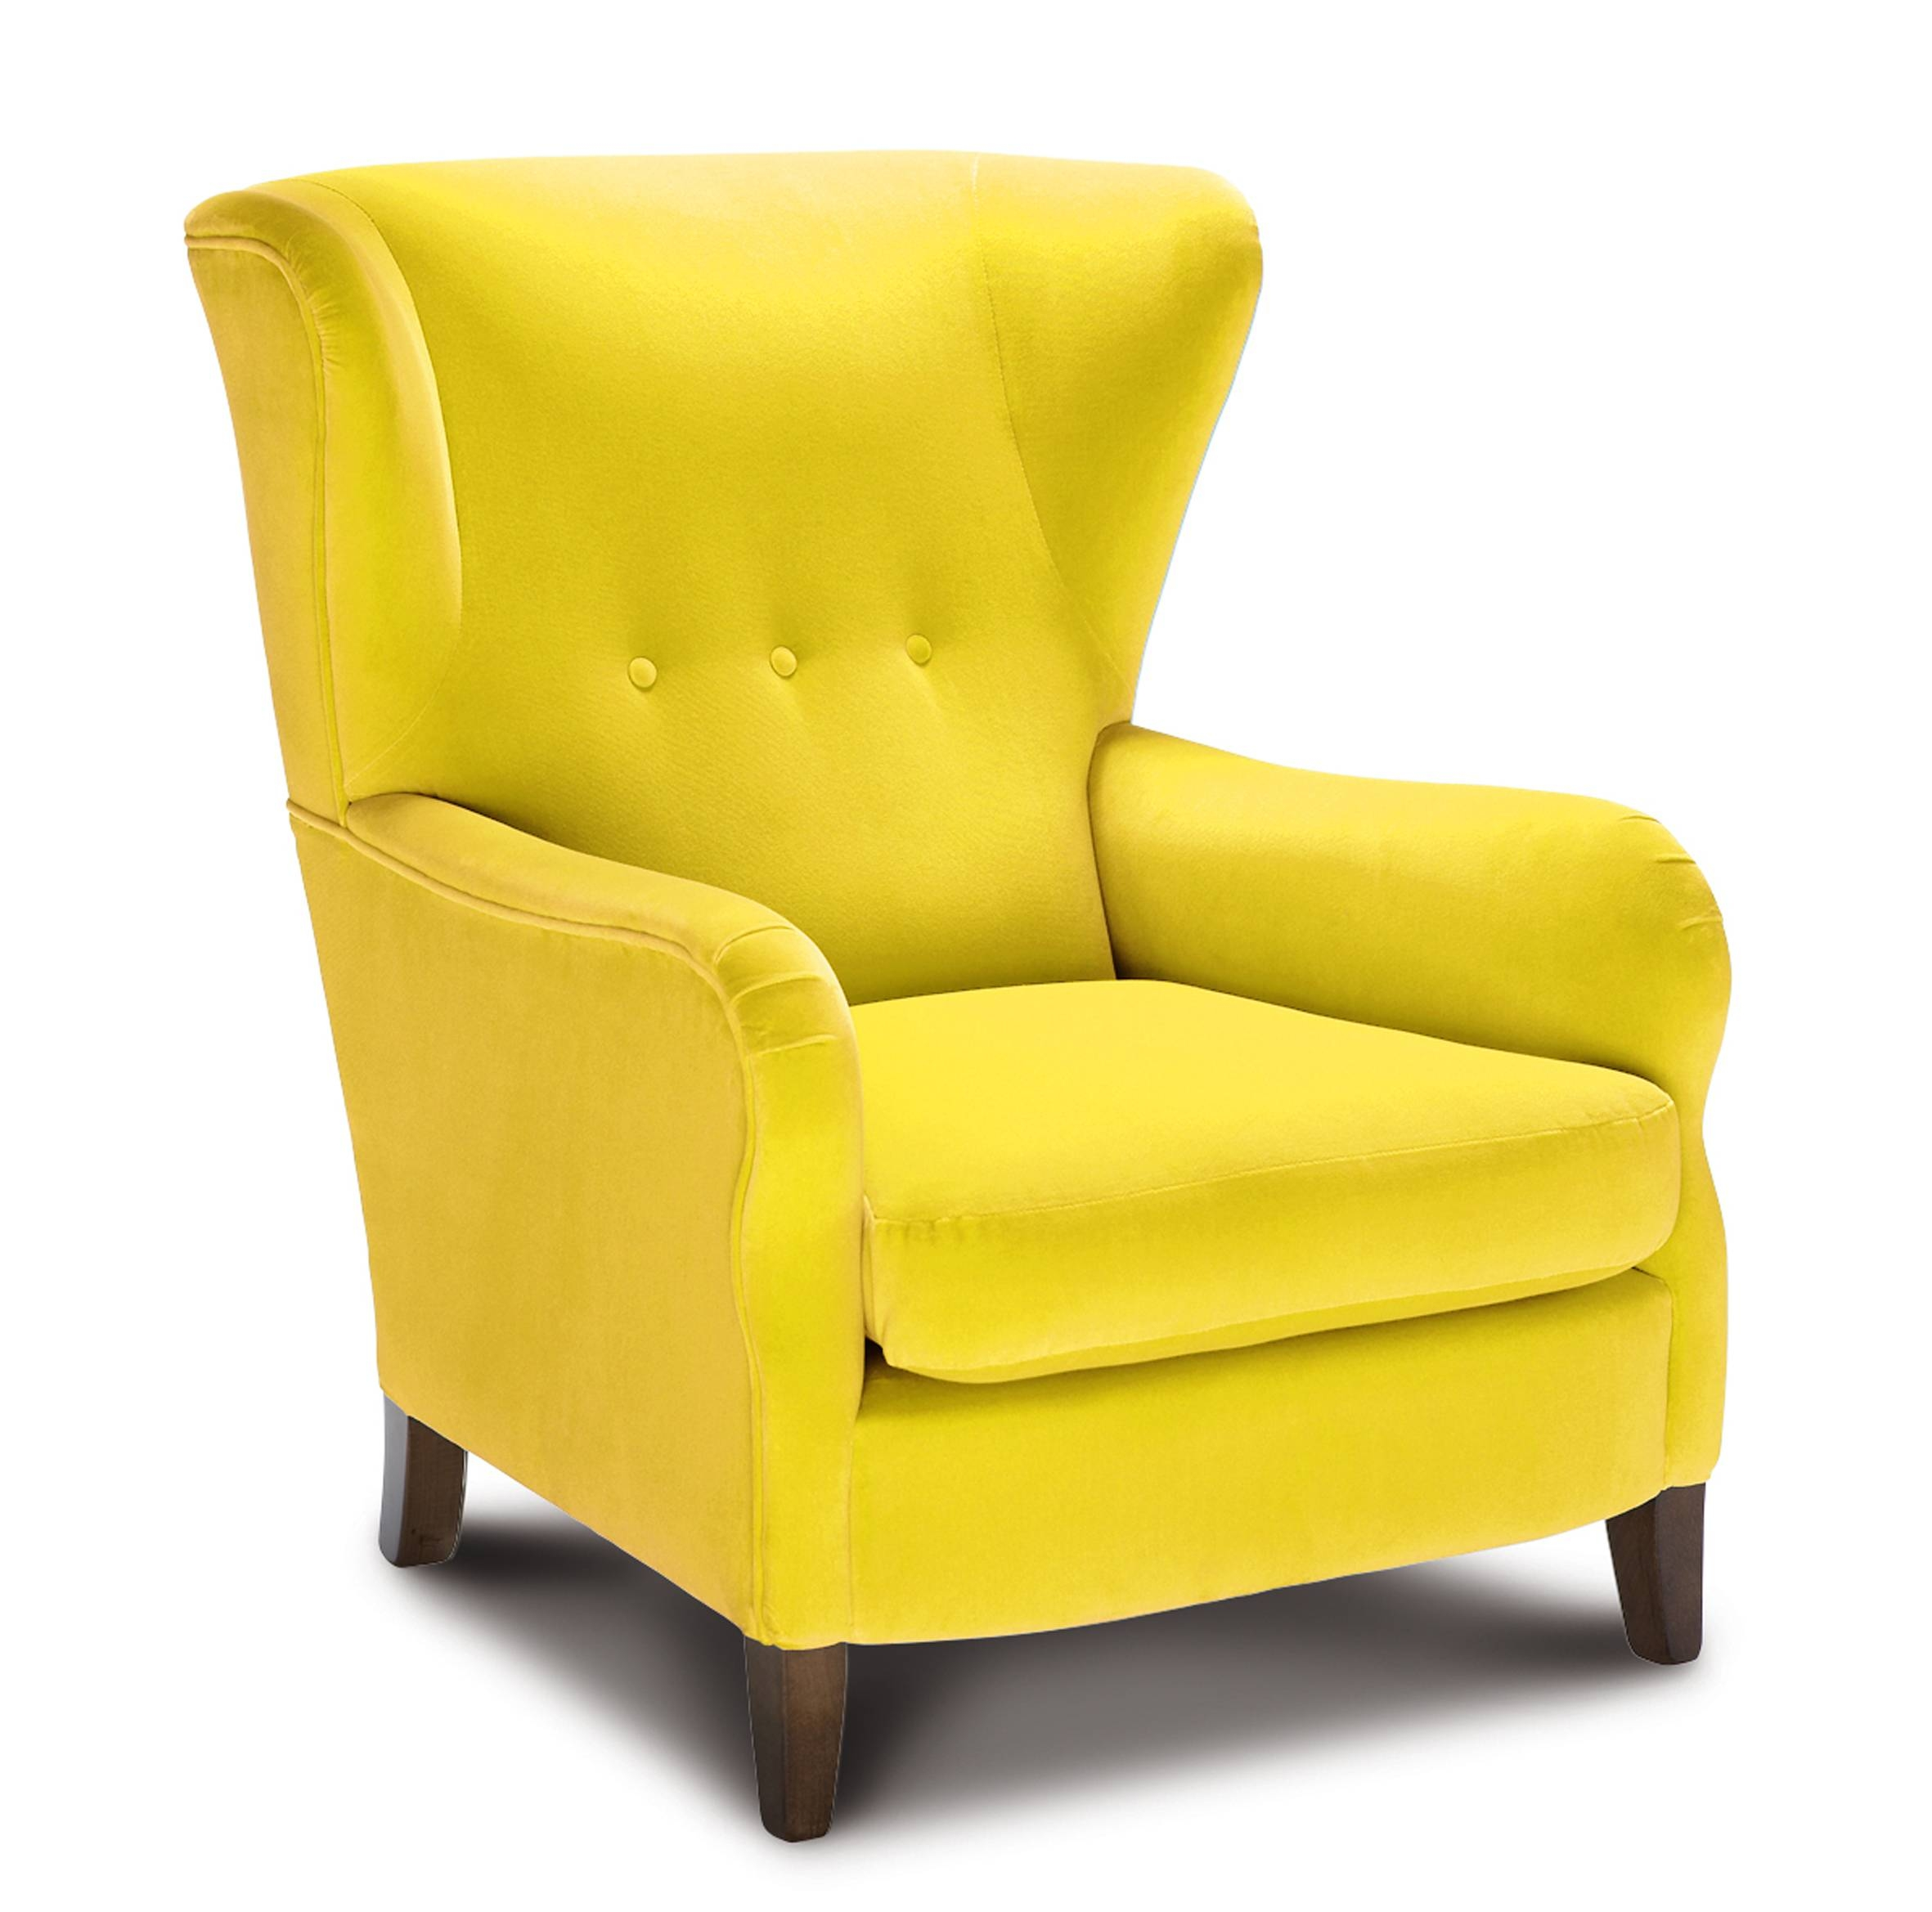 30 Best Ideas of Yellow Sofa Chairs